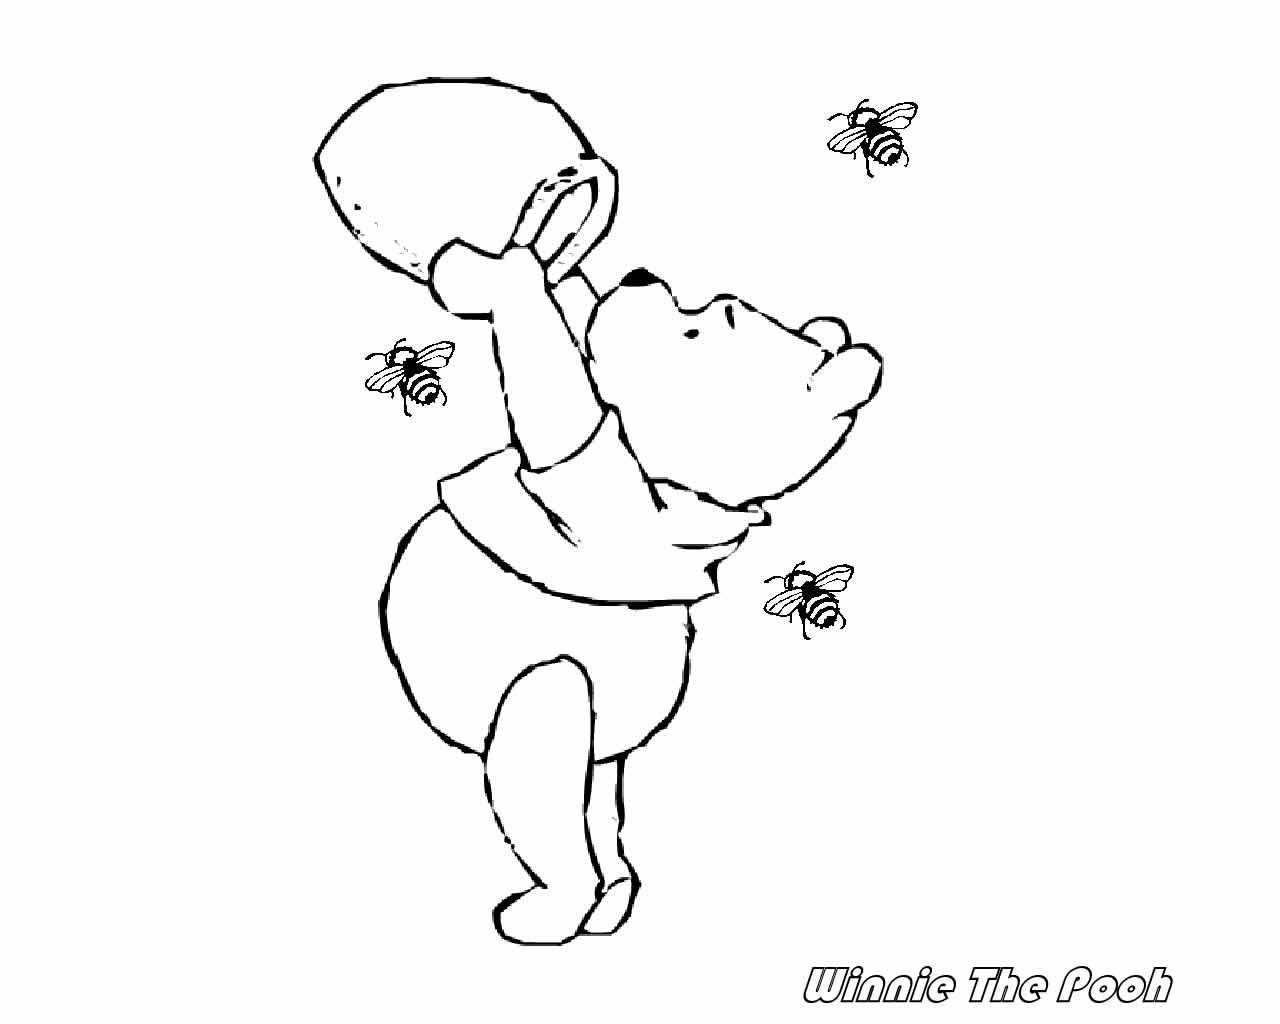 winnie the pooh coloring pages, winnie the pooh and friends coloring ...